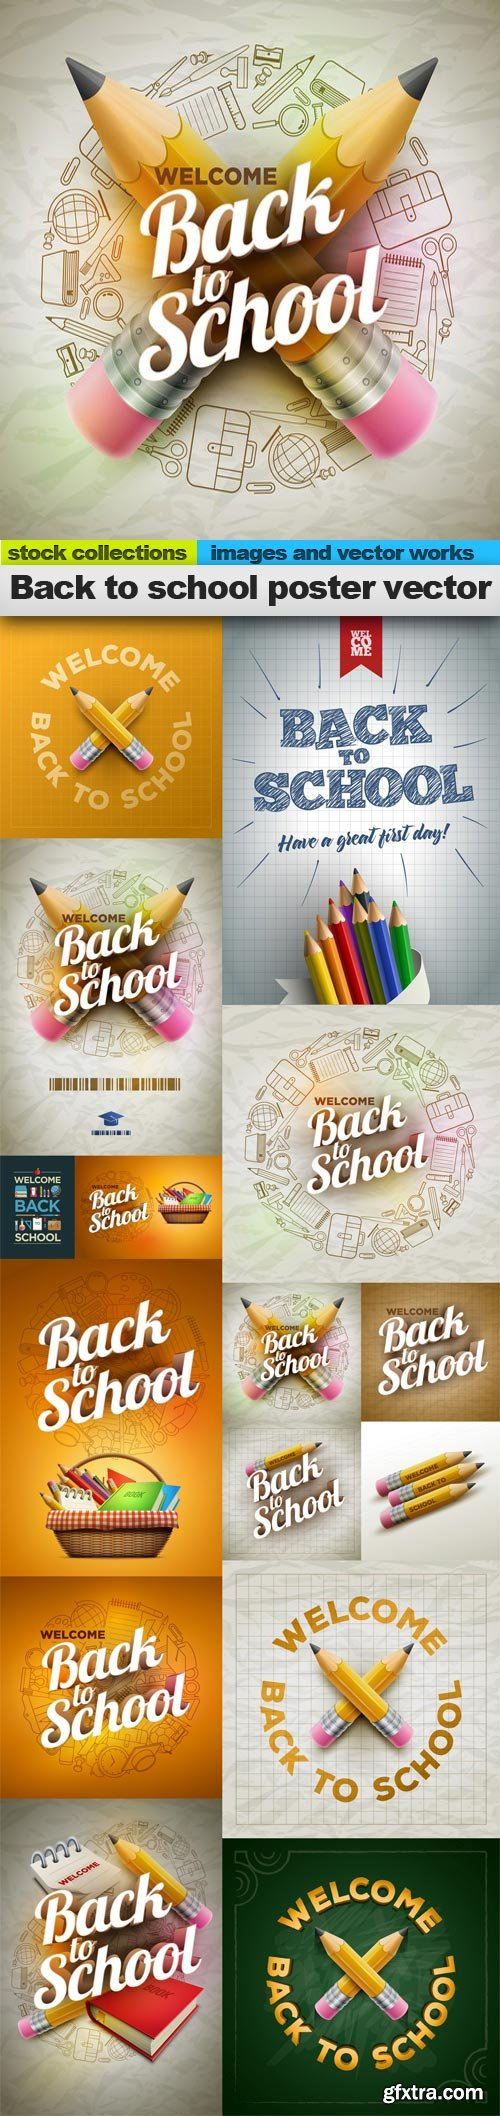 Back to school poster vector, 15 x EPS